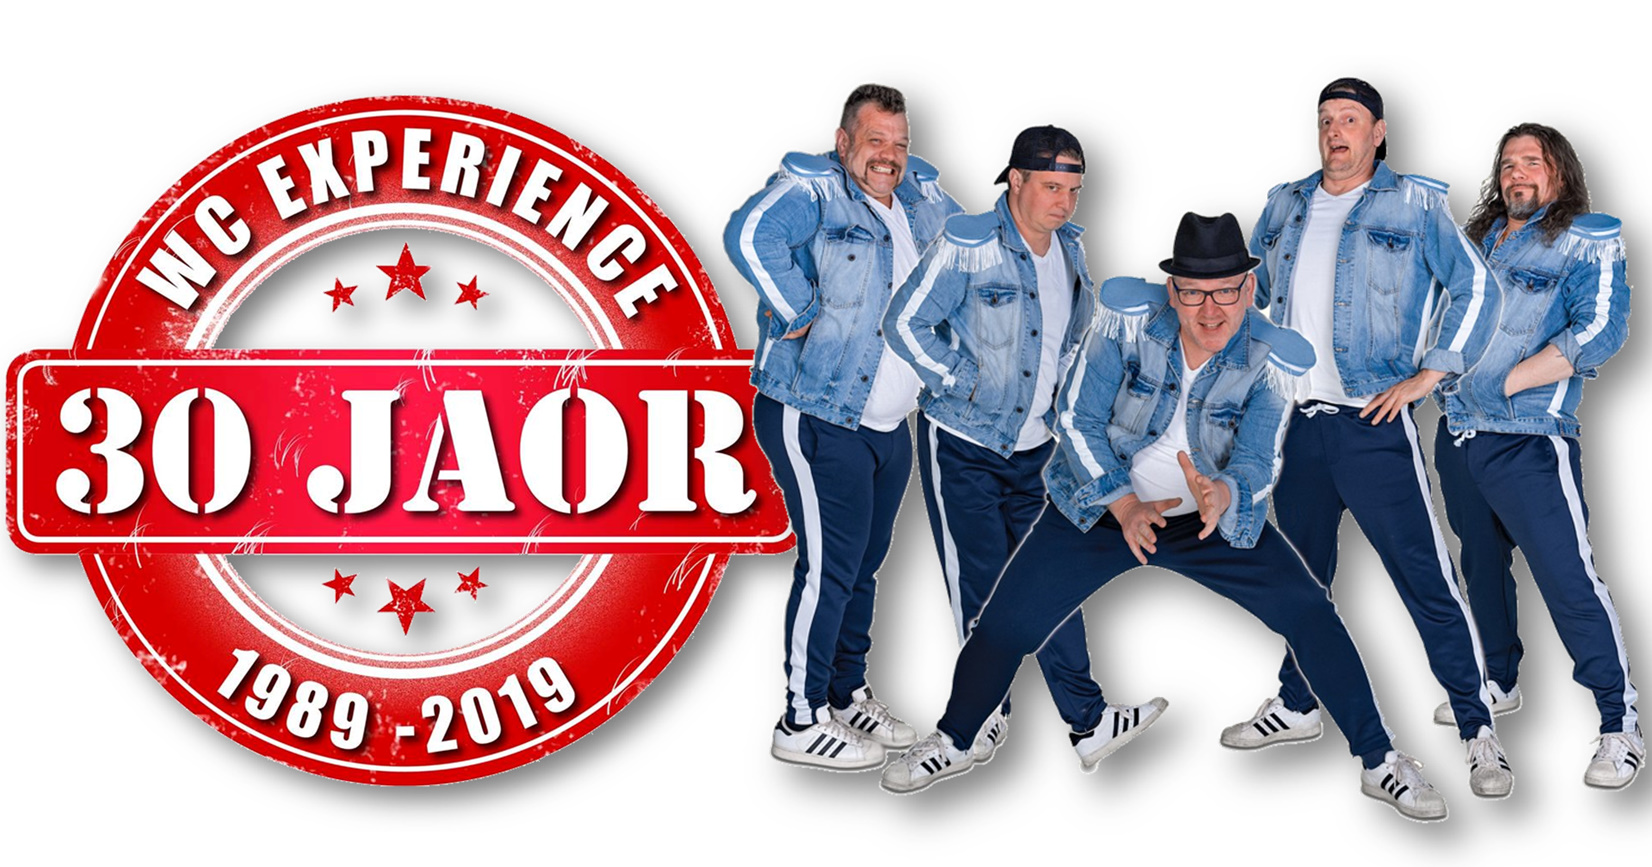 MDD Asten 2019 - WC Experience The 'Rock 'n Loll' legends van de oer echte Brabo-rock. • 19-04-2019